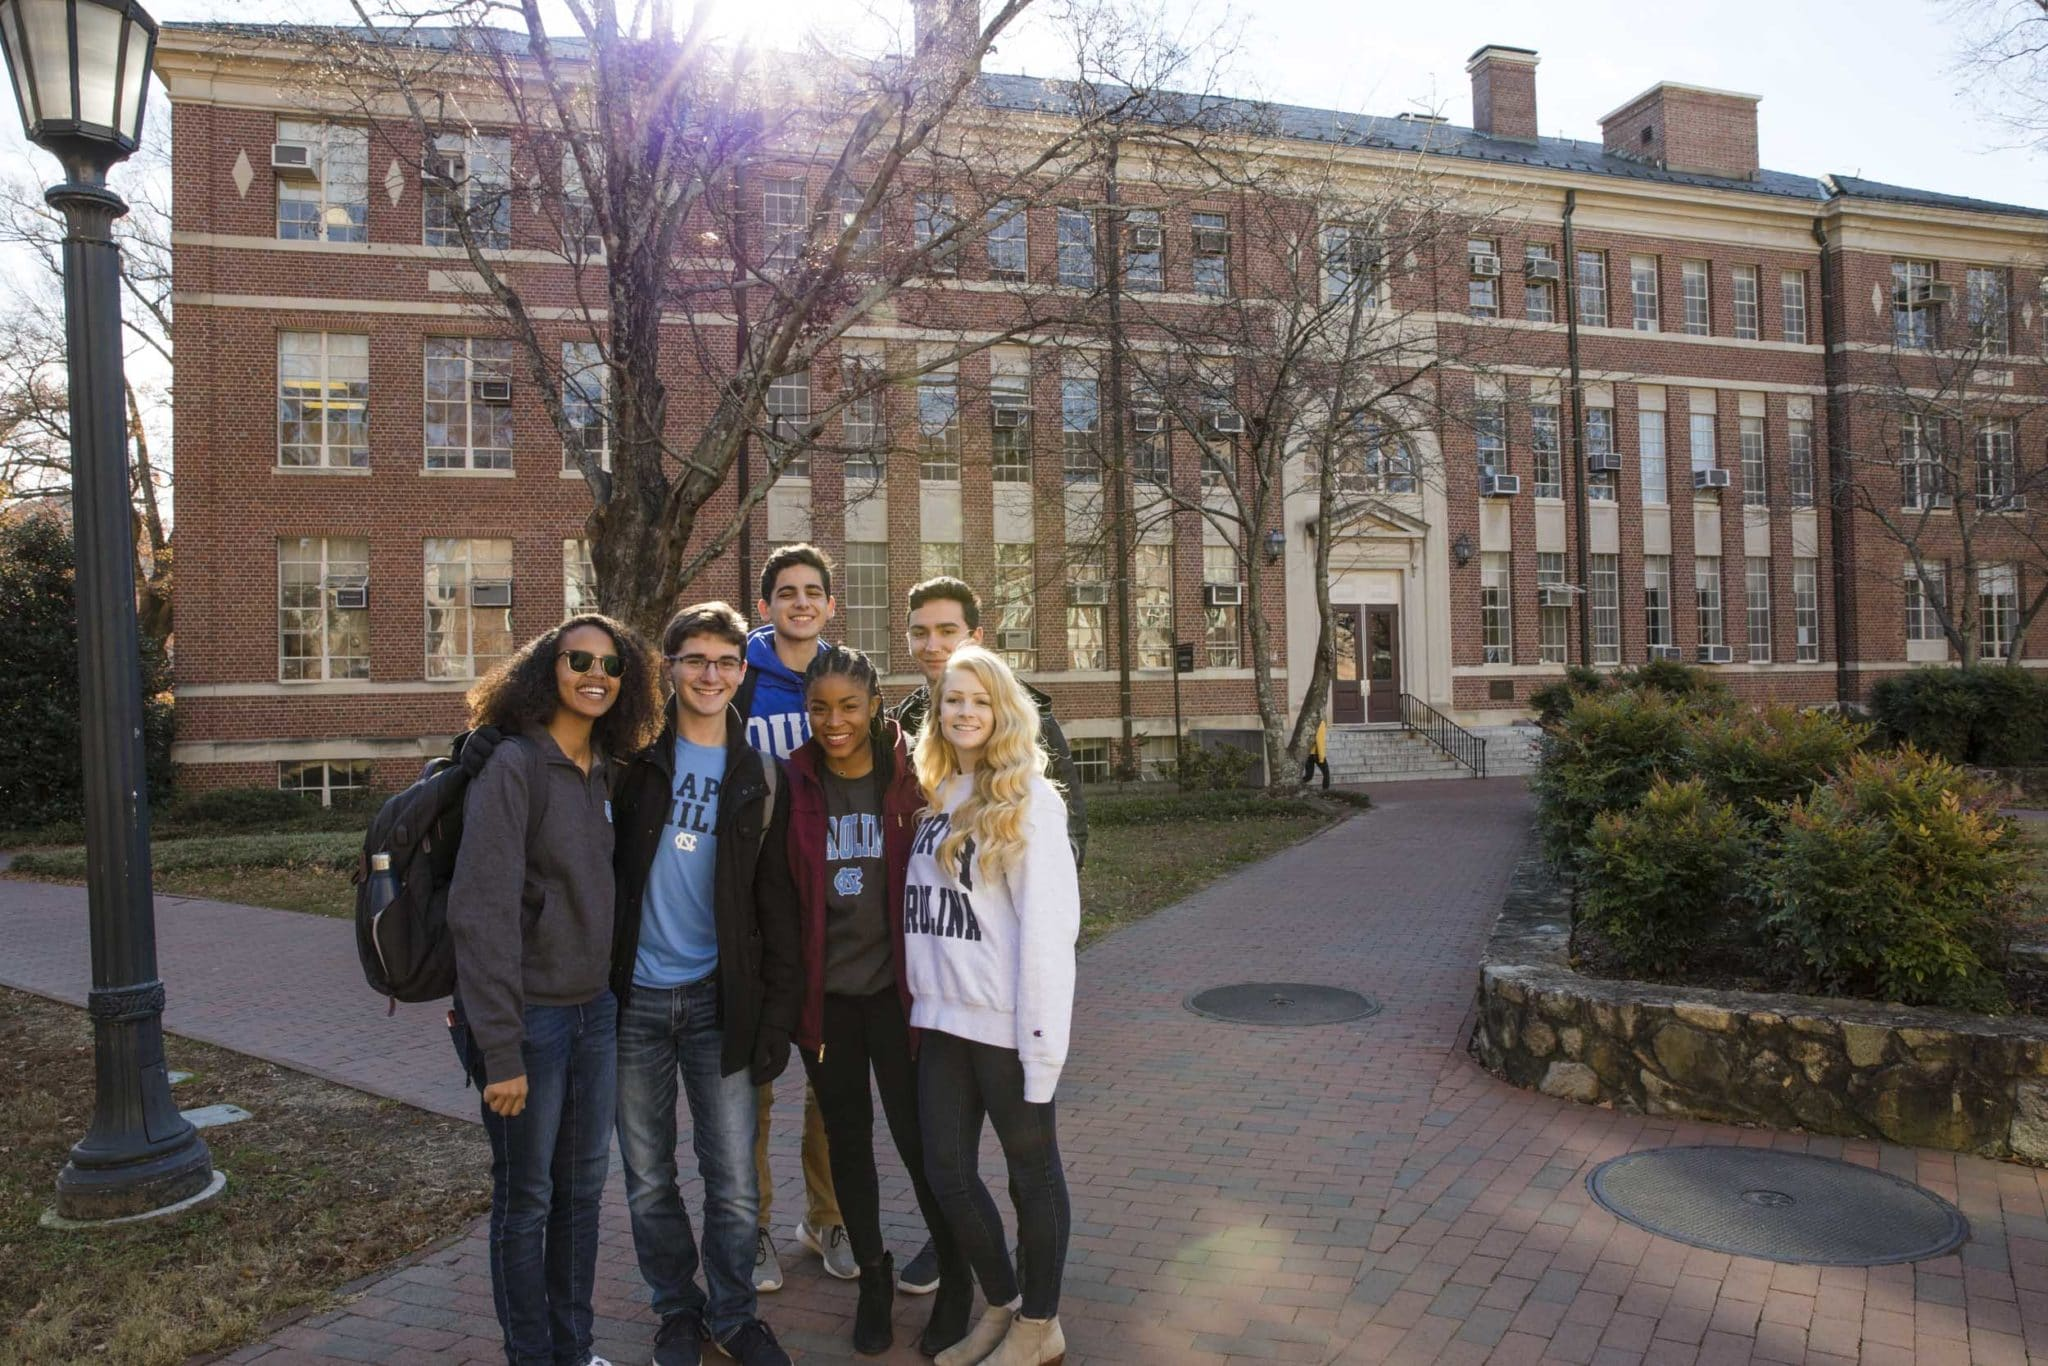 Students in front of campus building